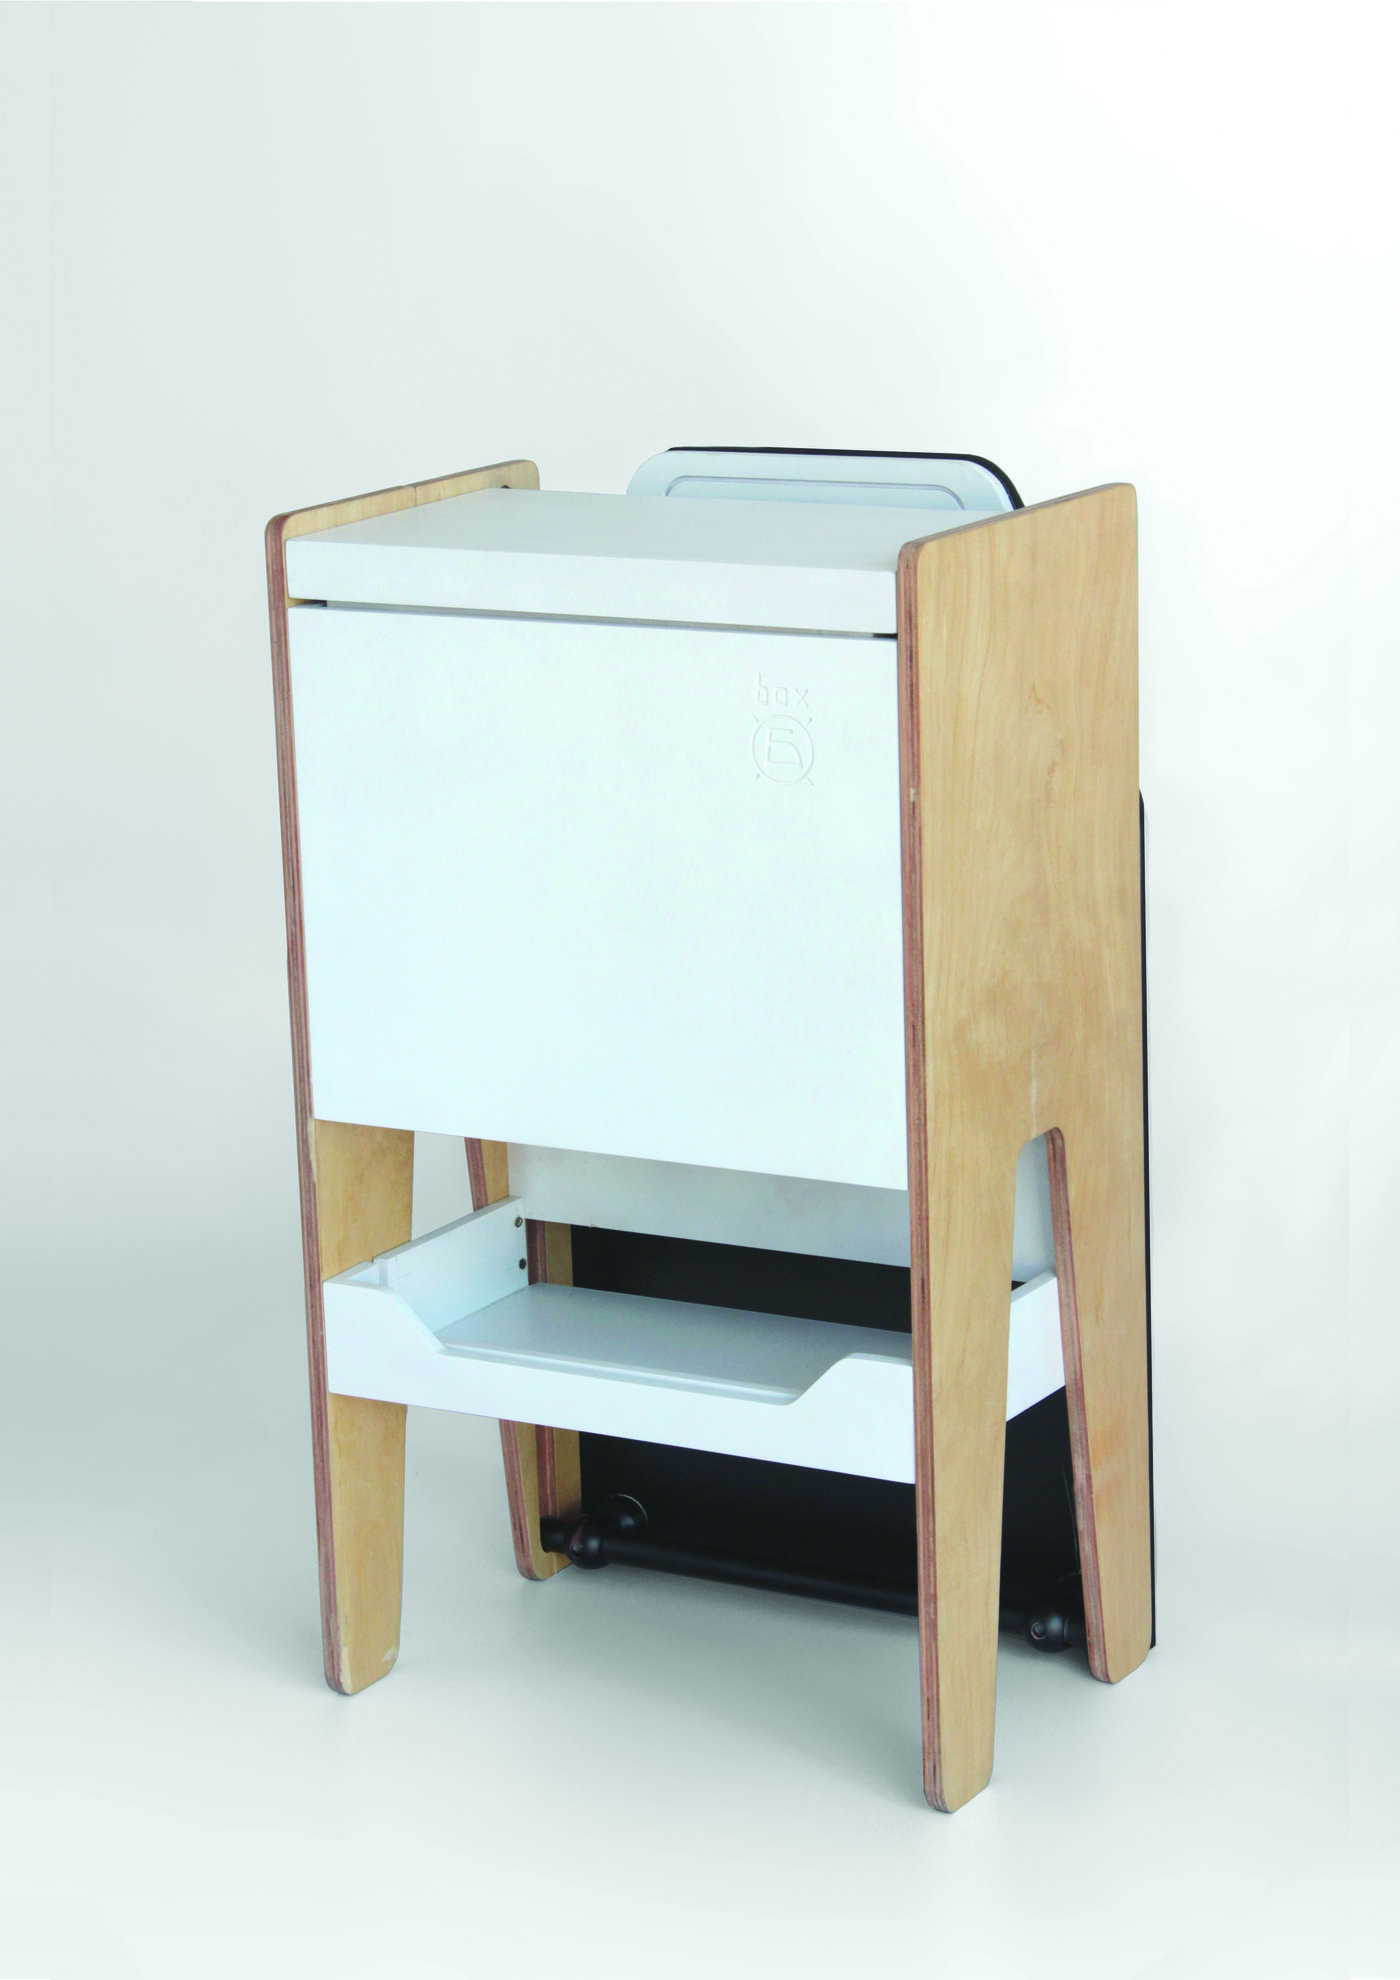 Mueble De Planchado Box De Planchado By Federico Faure At Coroflot